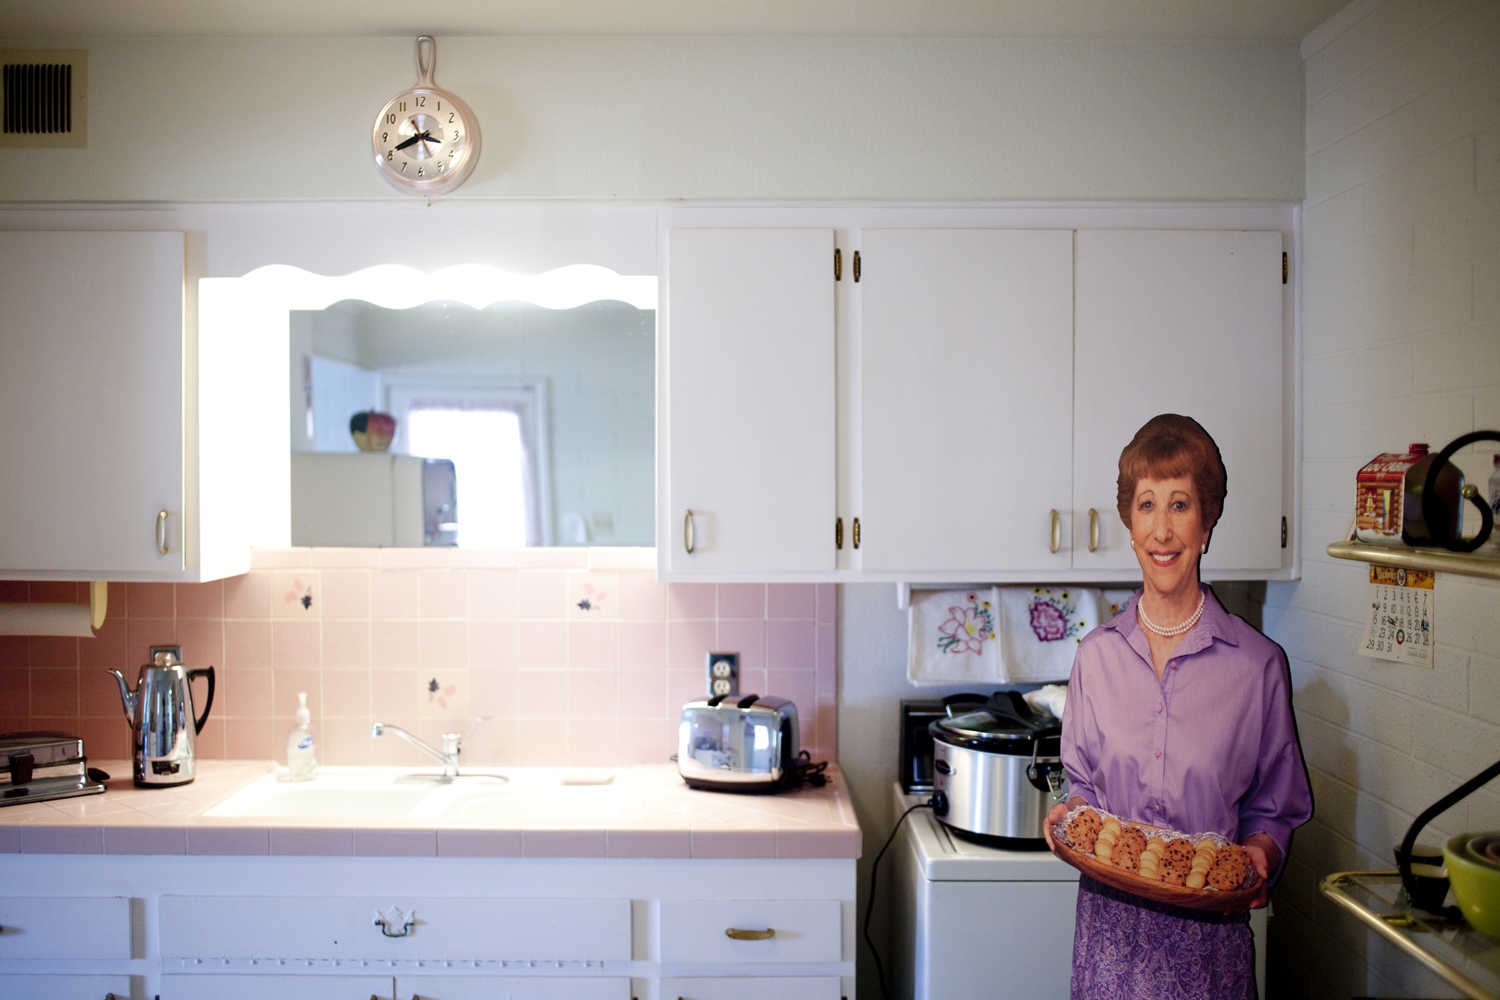 The kitchen in one of the original model homes, which is now the Del Webb Sun Cities Museum, in Sun City, Arizona. The display shows what it looked like on its opening day on January 1, 1960. Sun City, Arizona is the United States' first planned retirement city.